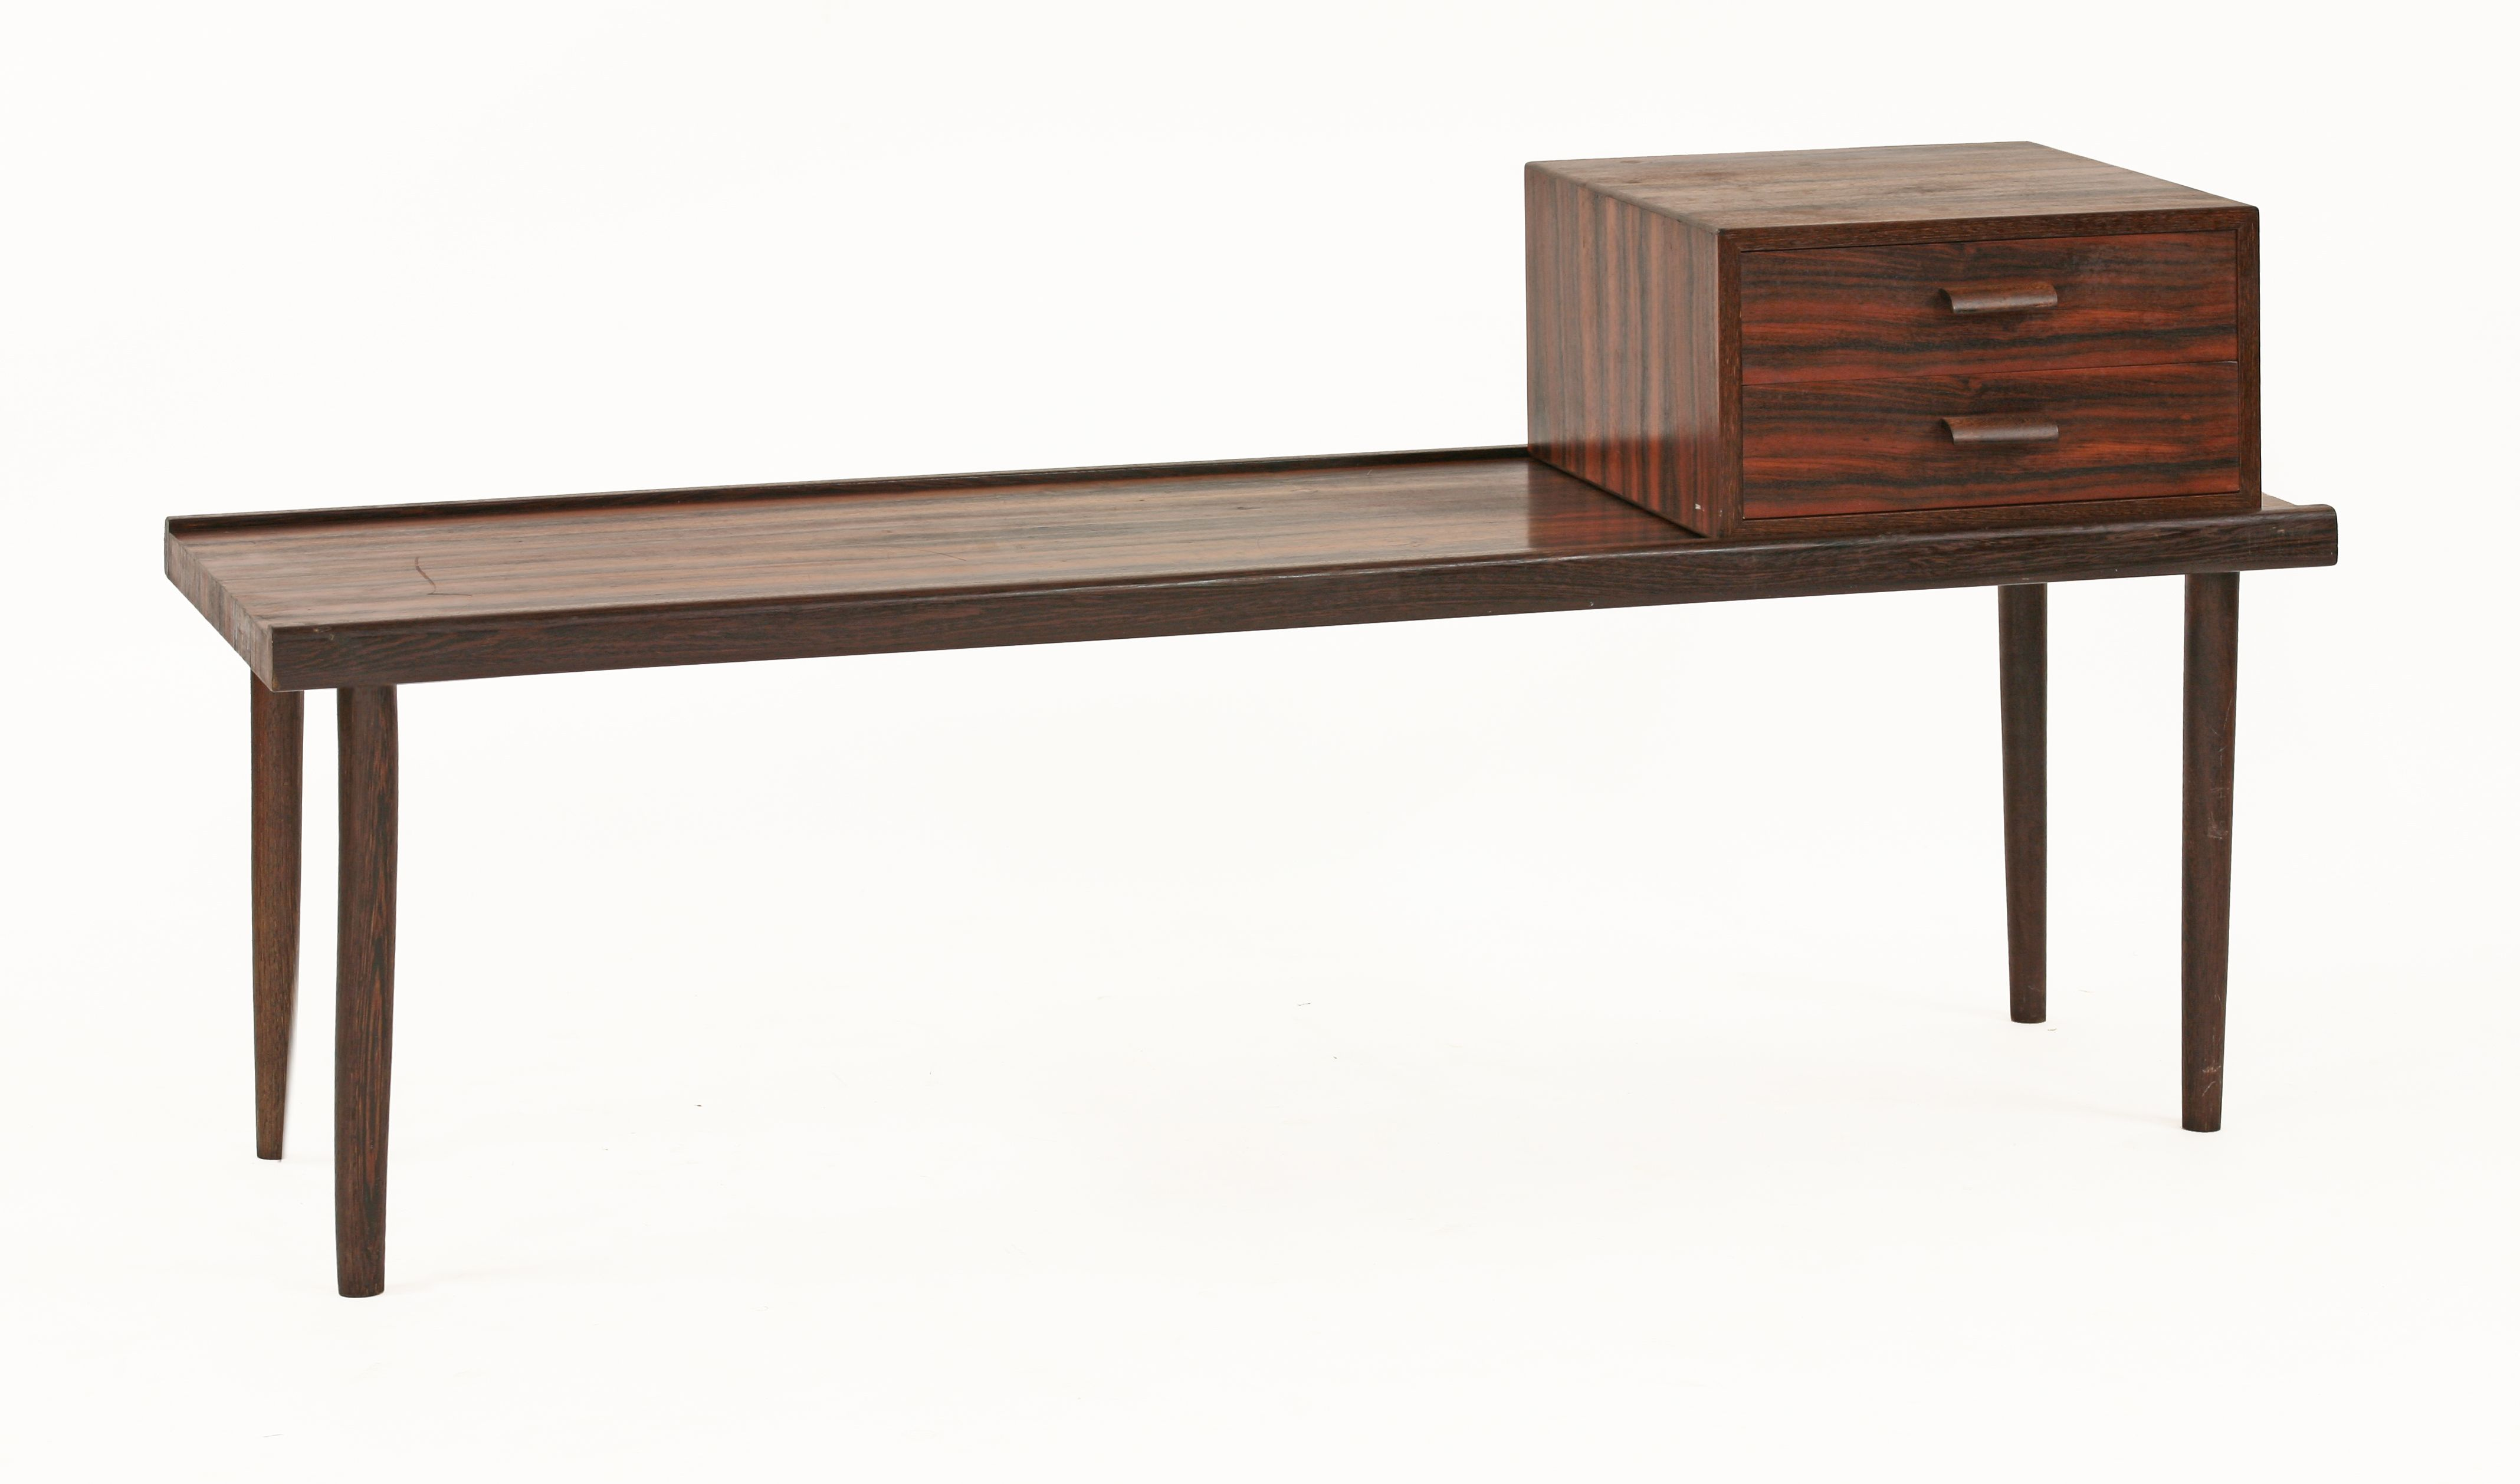 A Danish Rosewood And Wenge Wood Telephone Table, The Oblong Table With  Rail Sides,